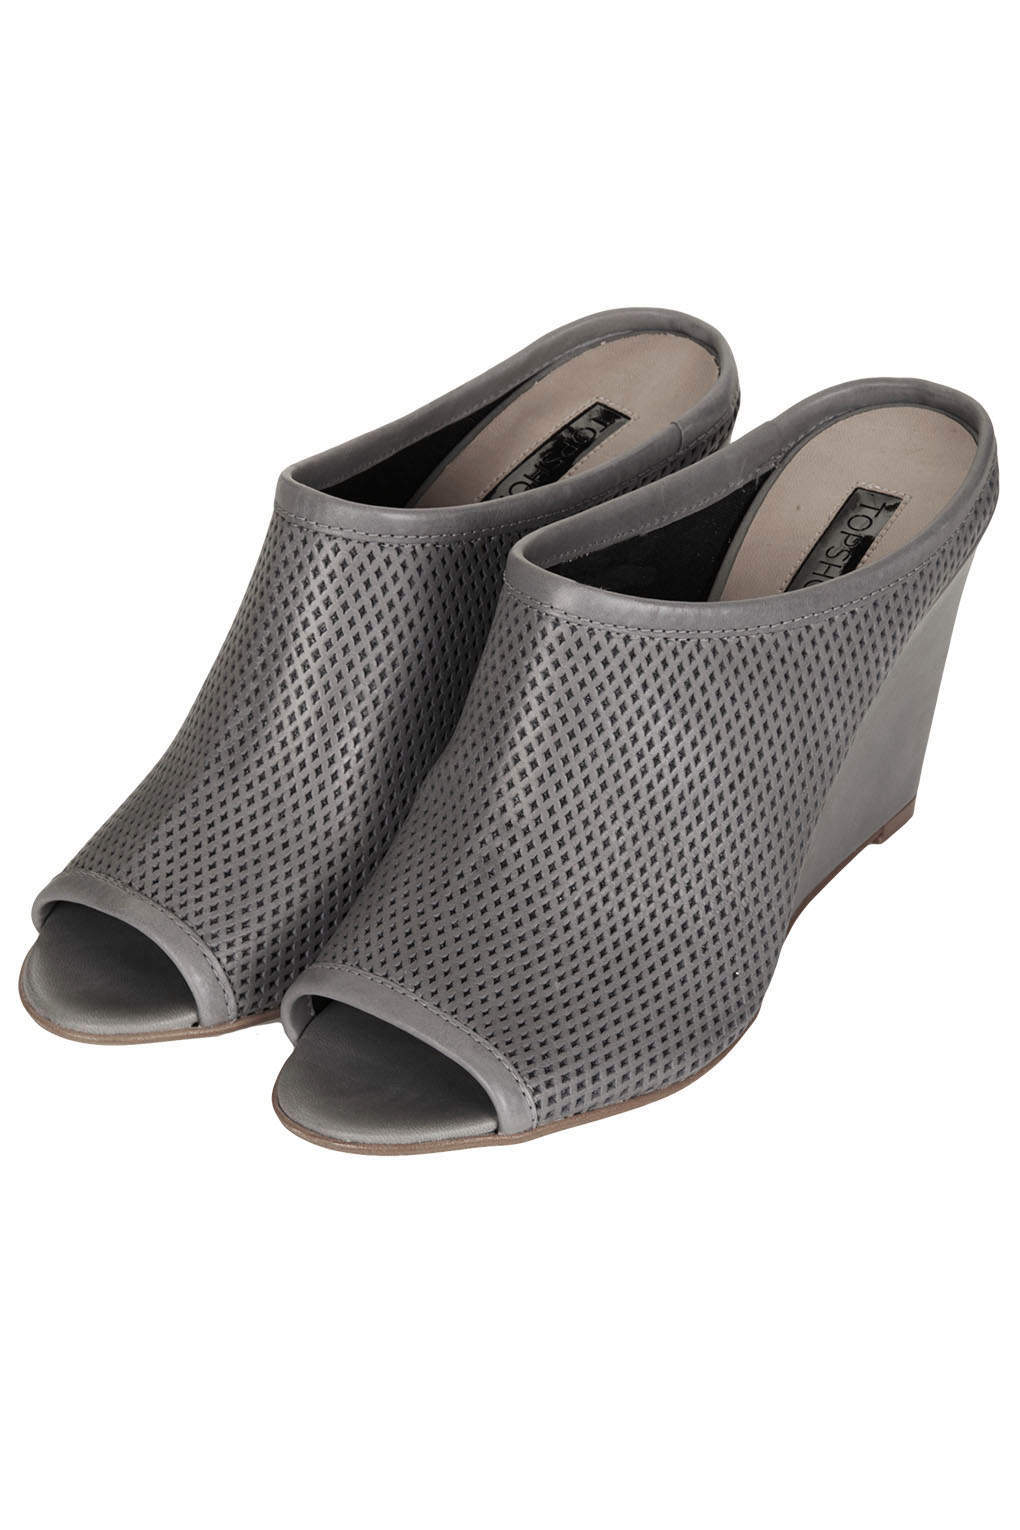 Lyst Topshop Waltz Perforated Mule Shoes In Gray